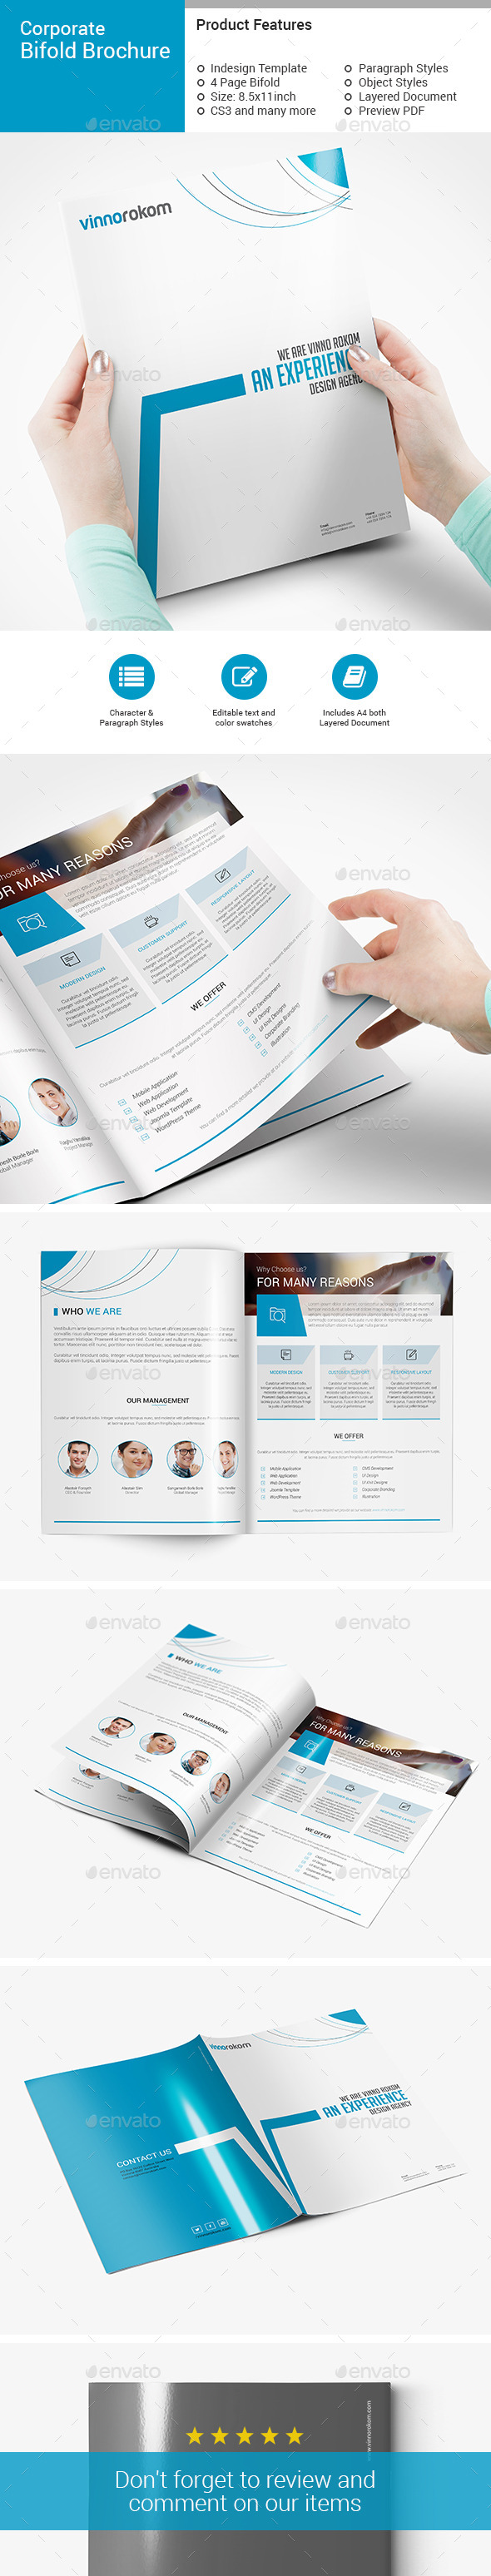 GraphicRiver Bifold Brochure 10518266